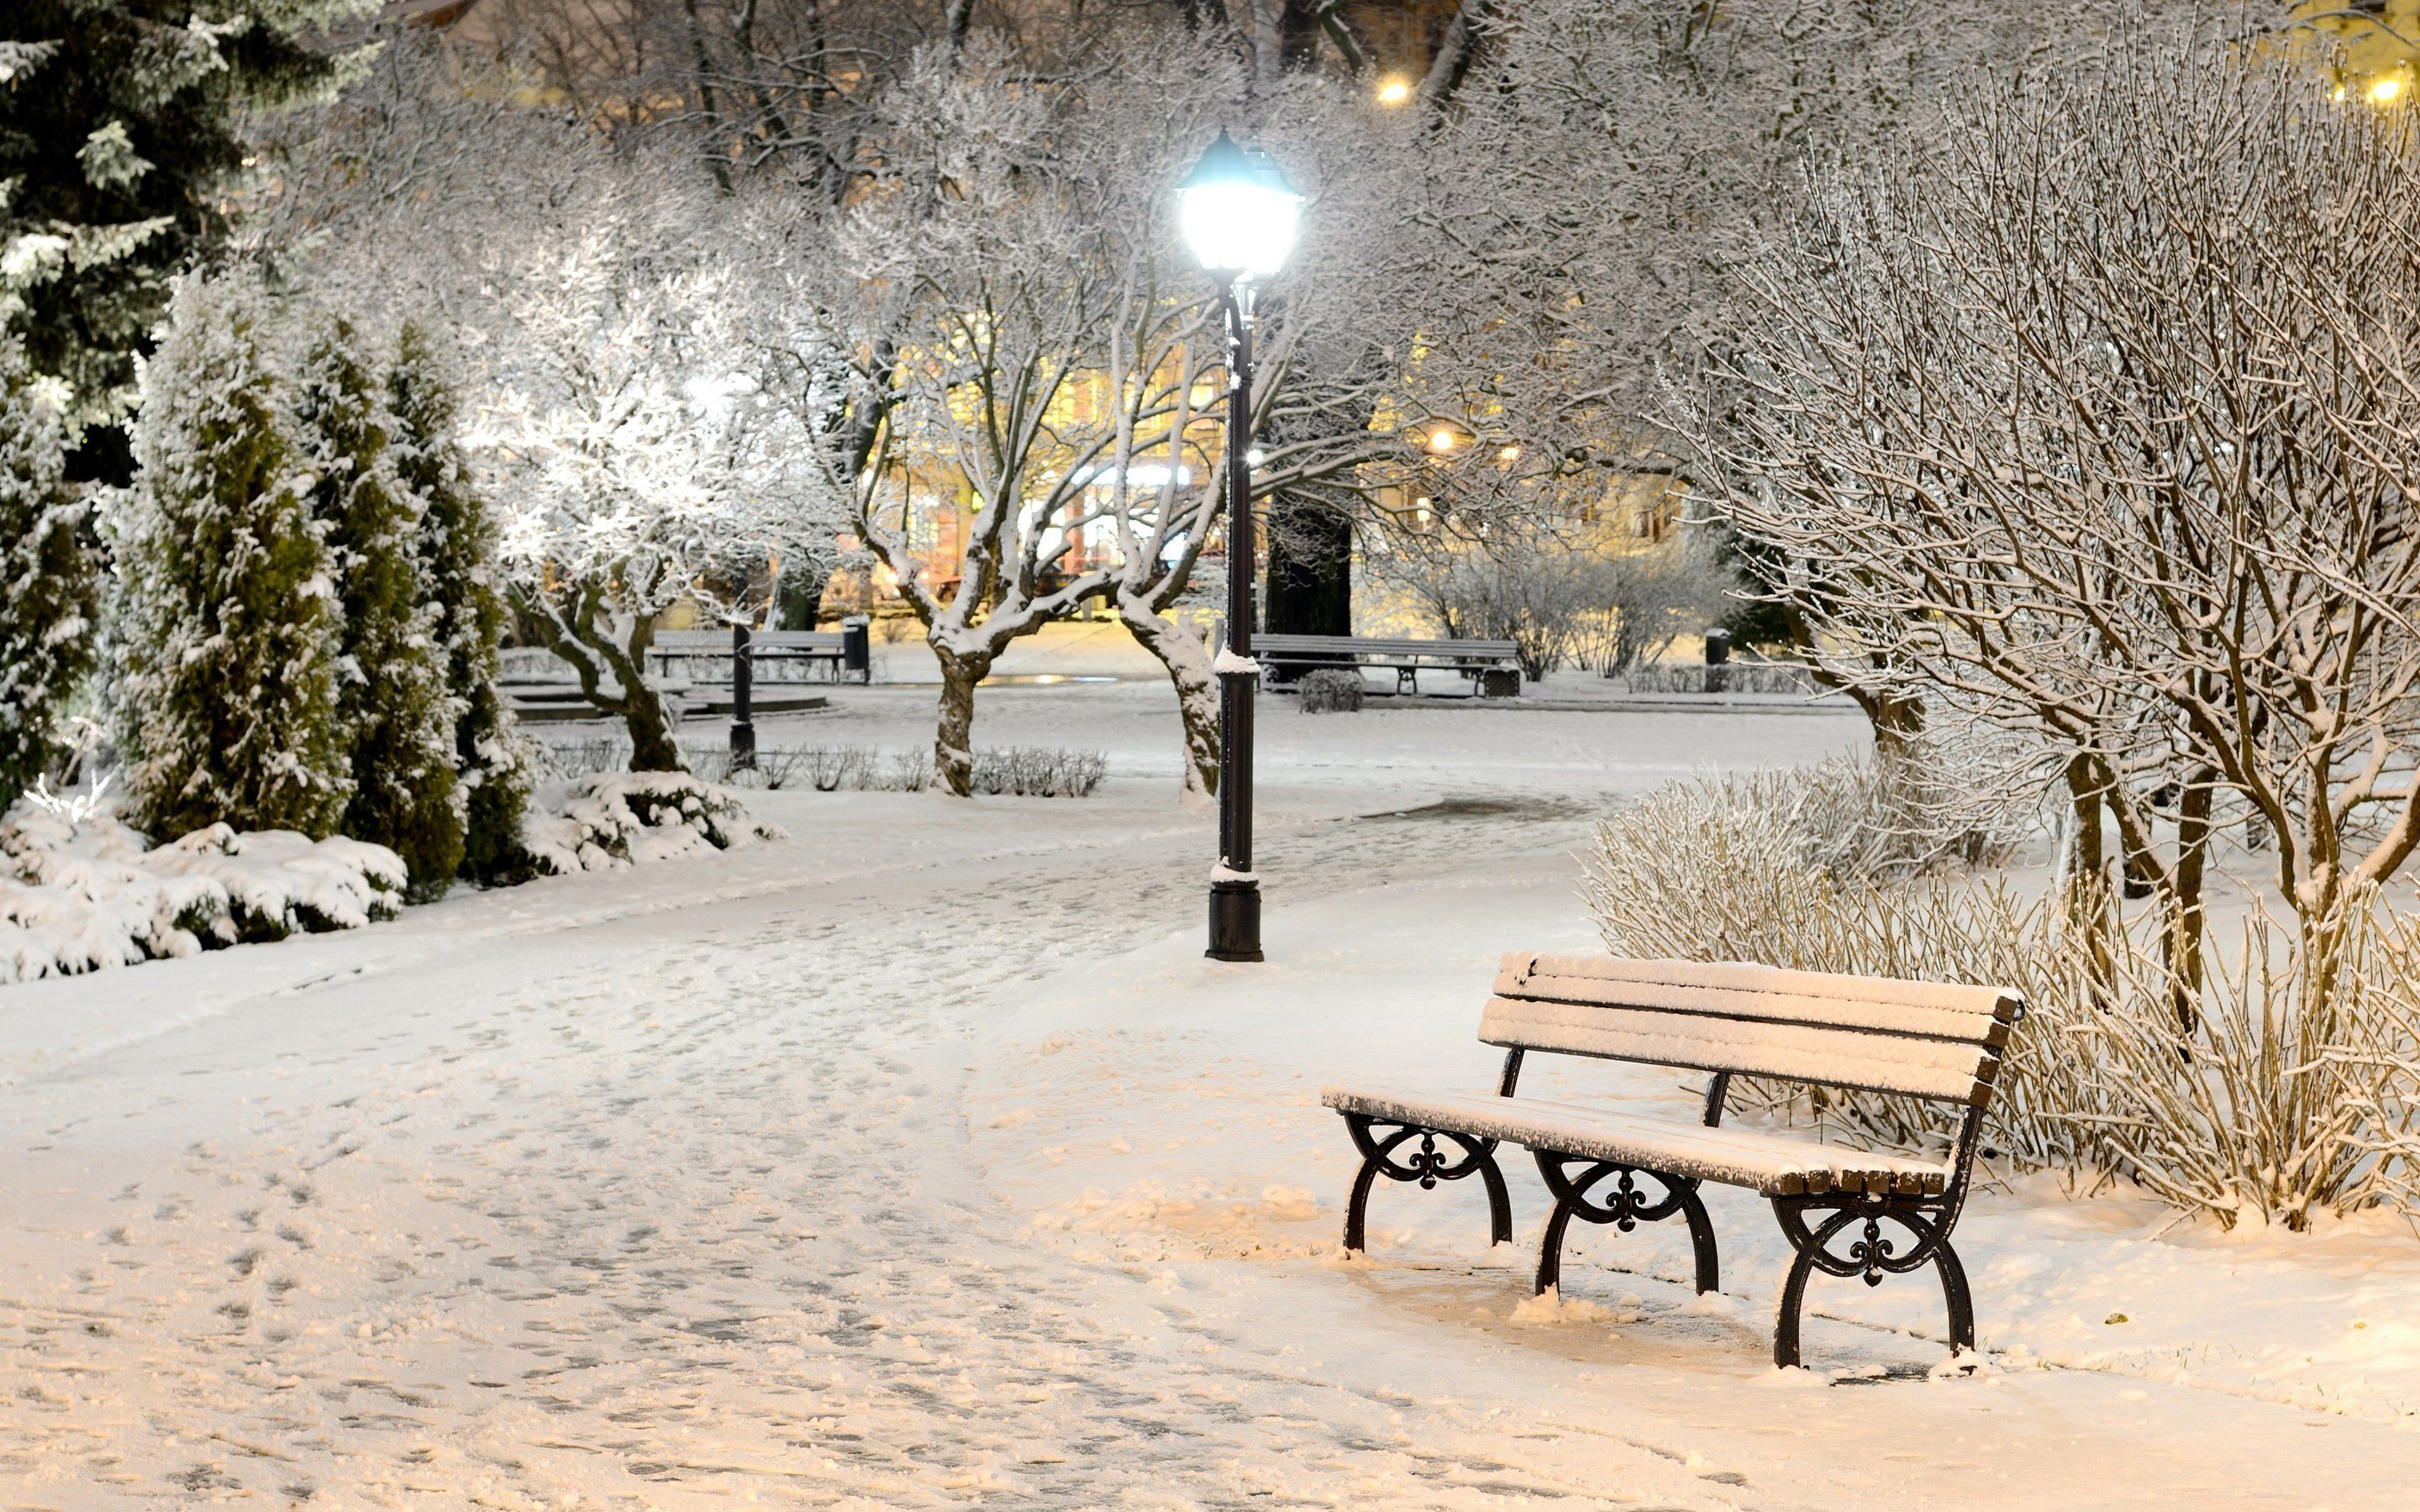 Snow Night Wallpapers Hd With High Resolution Wallpaper